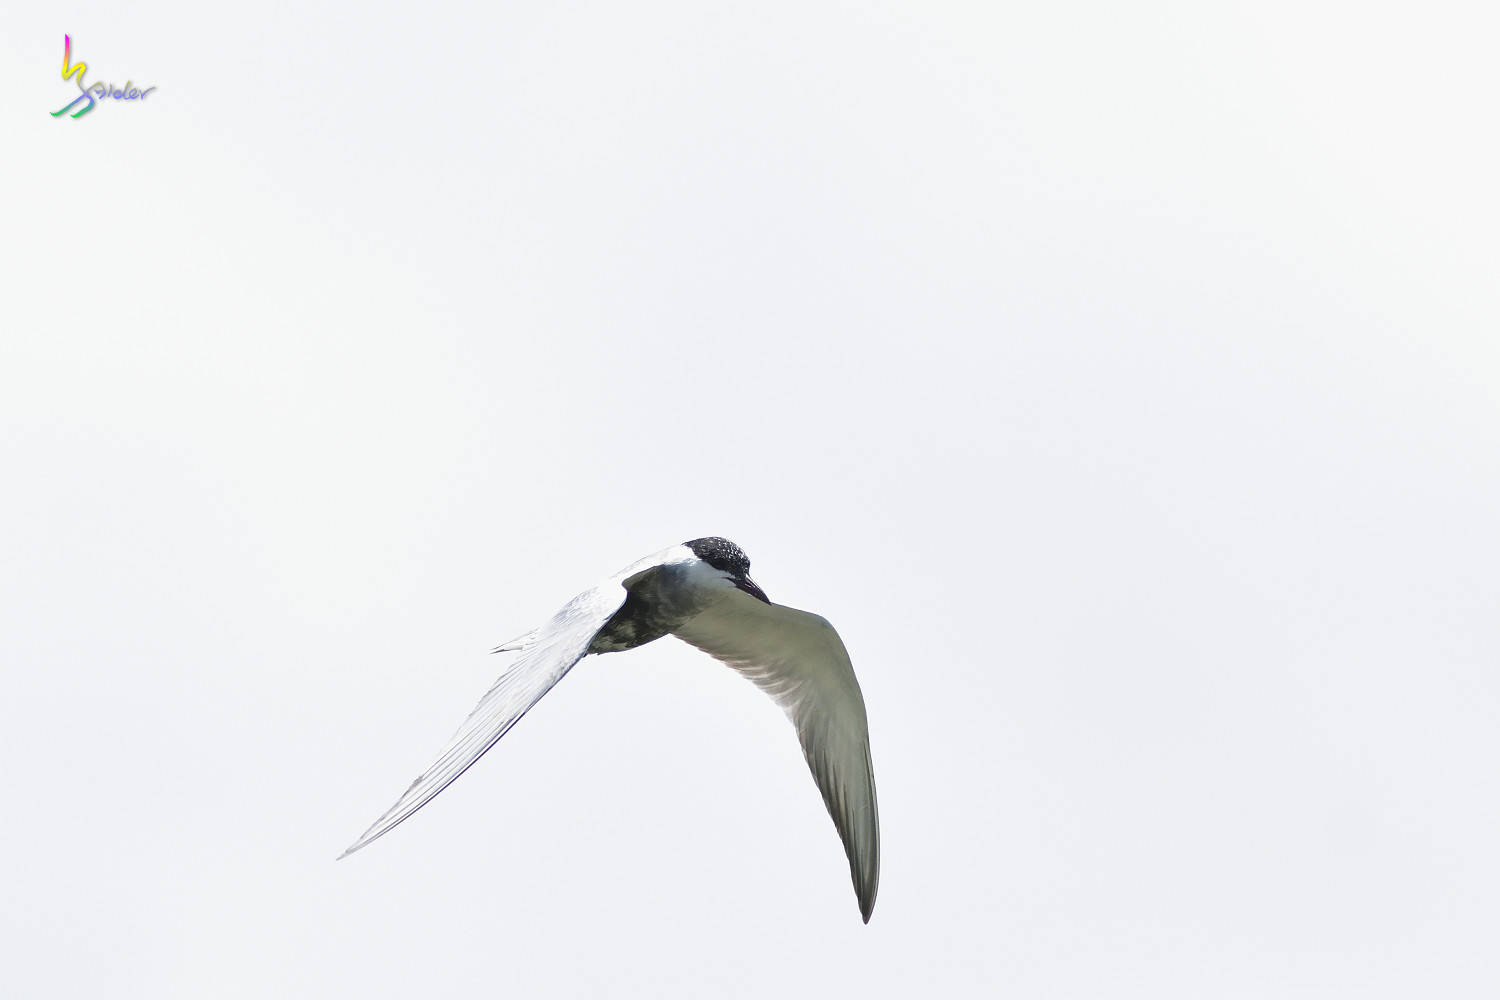 Whiskered_Tern_5053